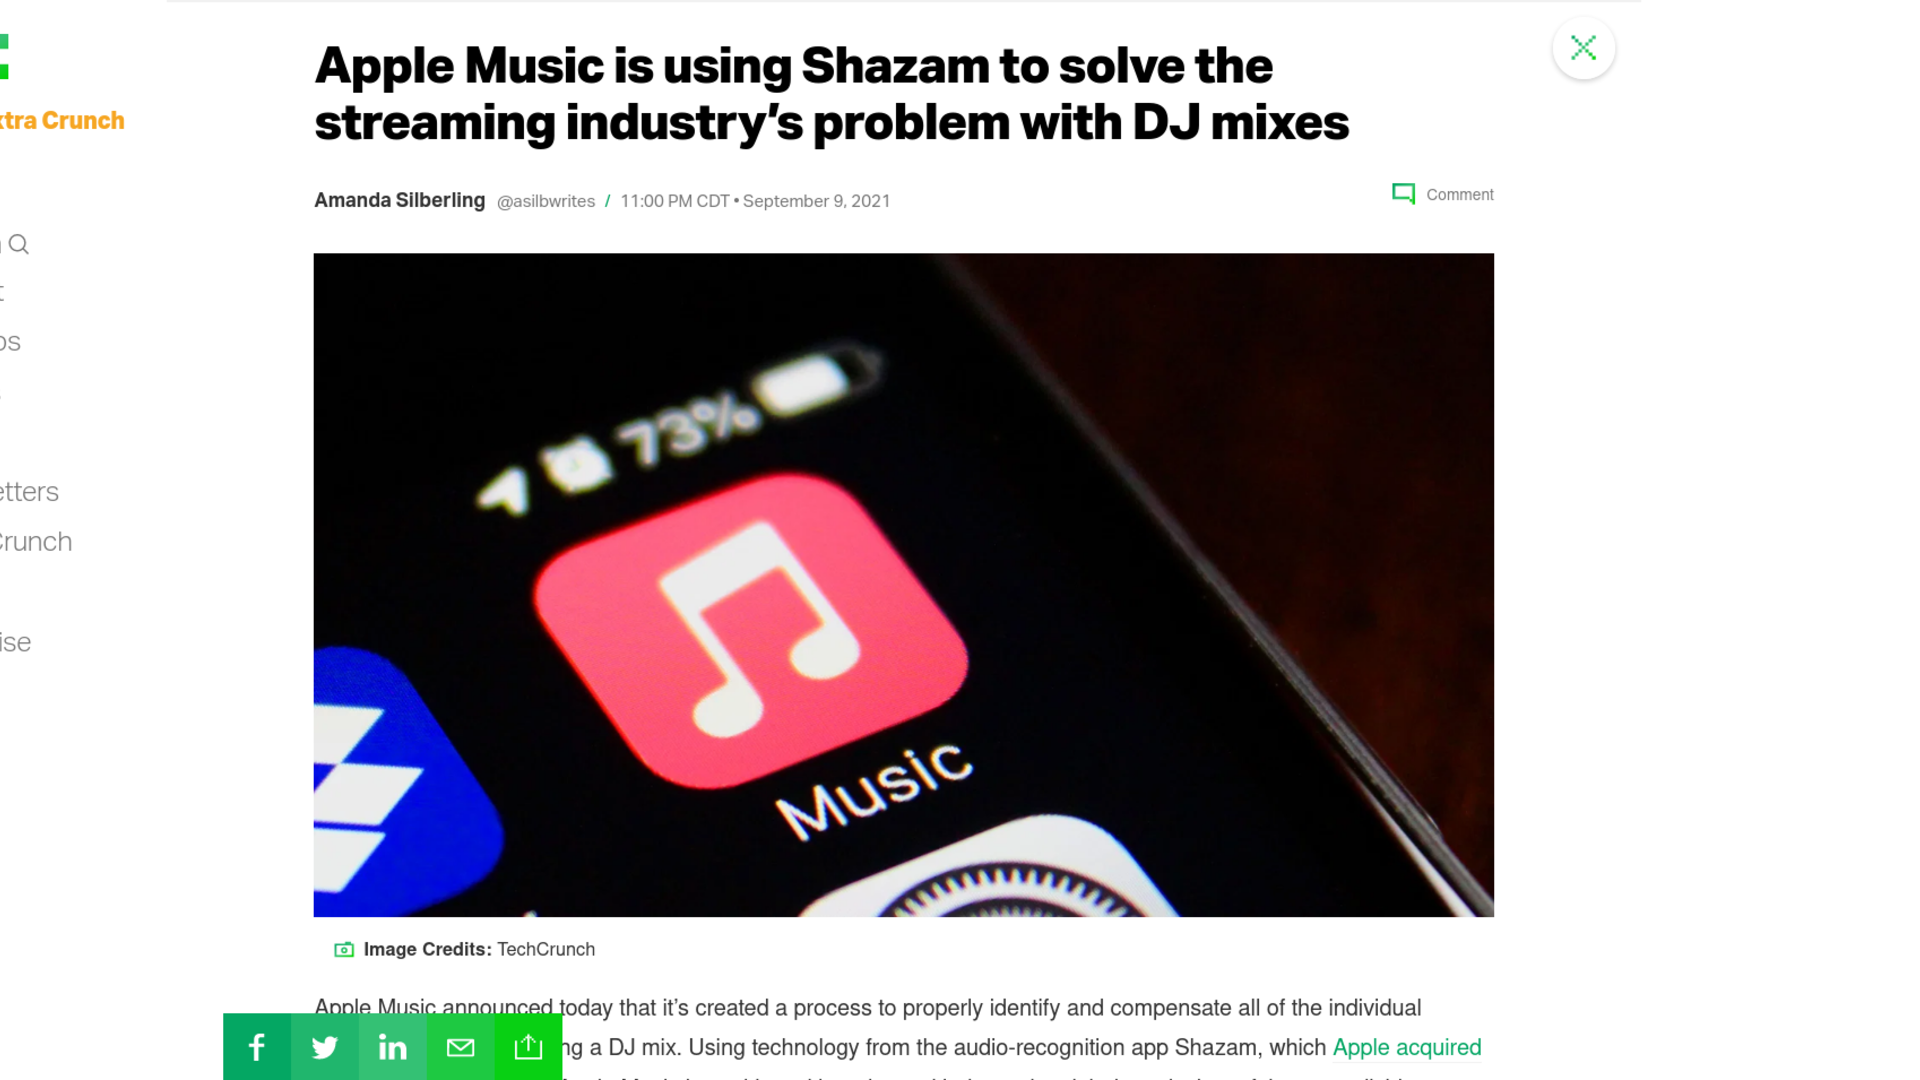 Fairness Rocks News Apple Music is using Shazam to solve the streaming industry's problem with DJ mixes